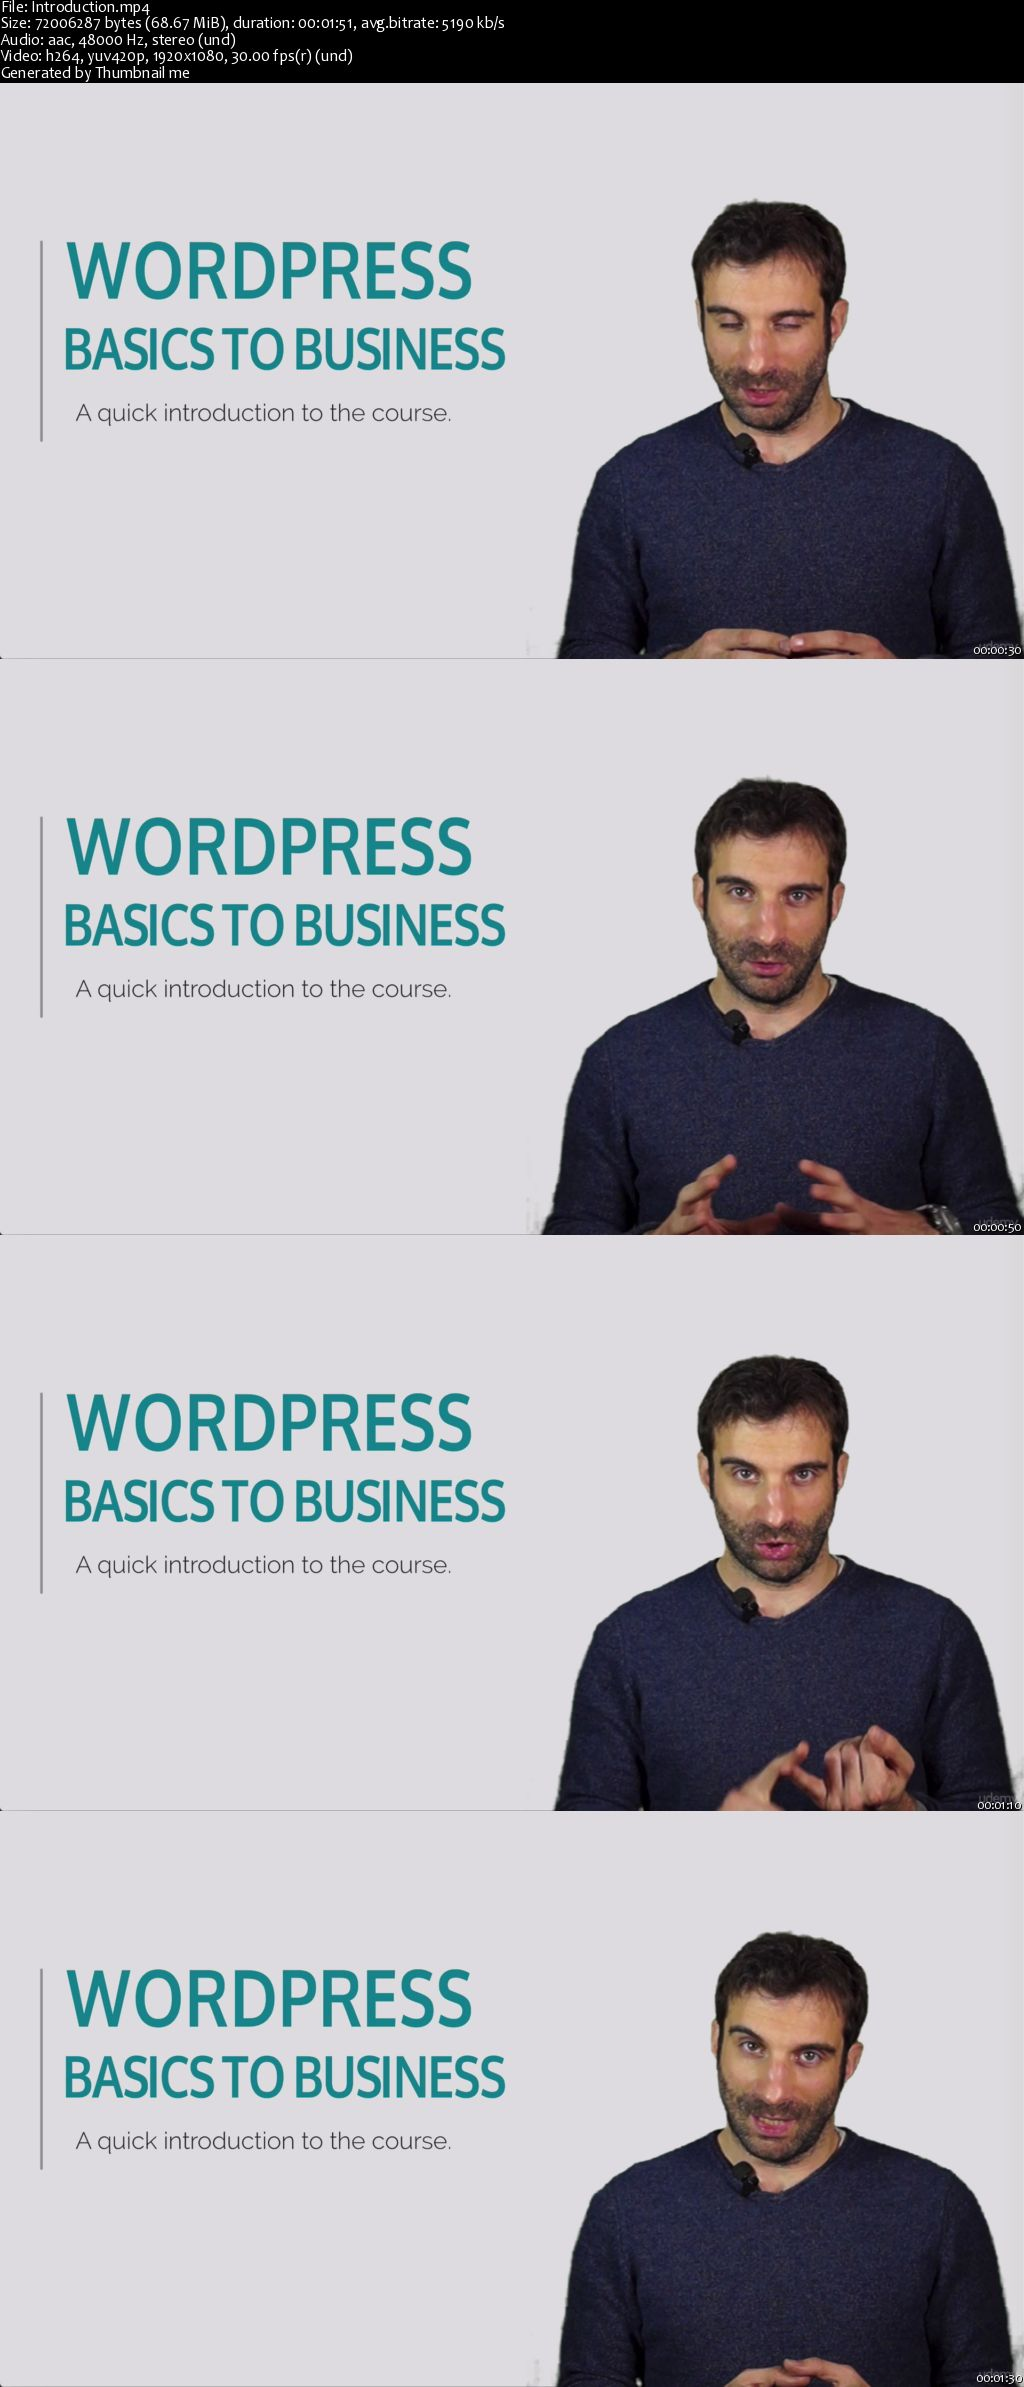 WordPress Basics to Business: Share and Sell your Expertise